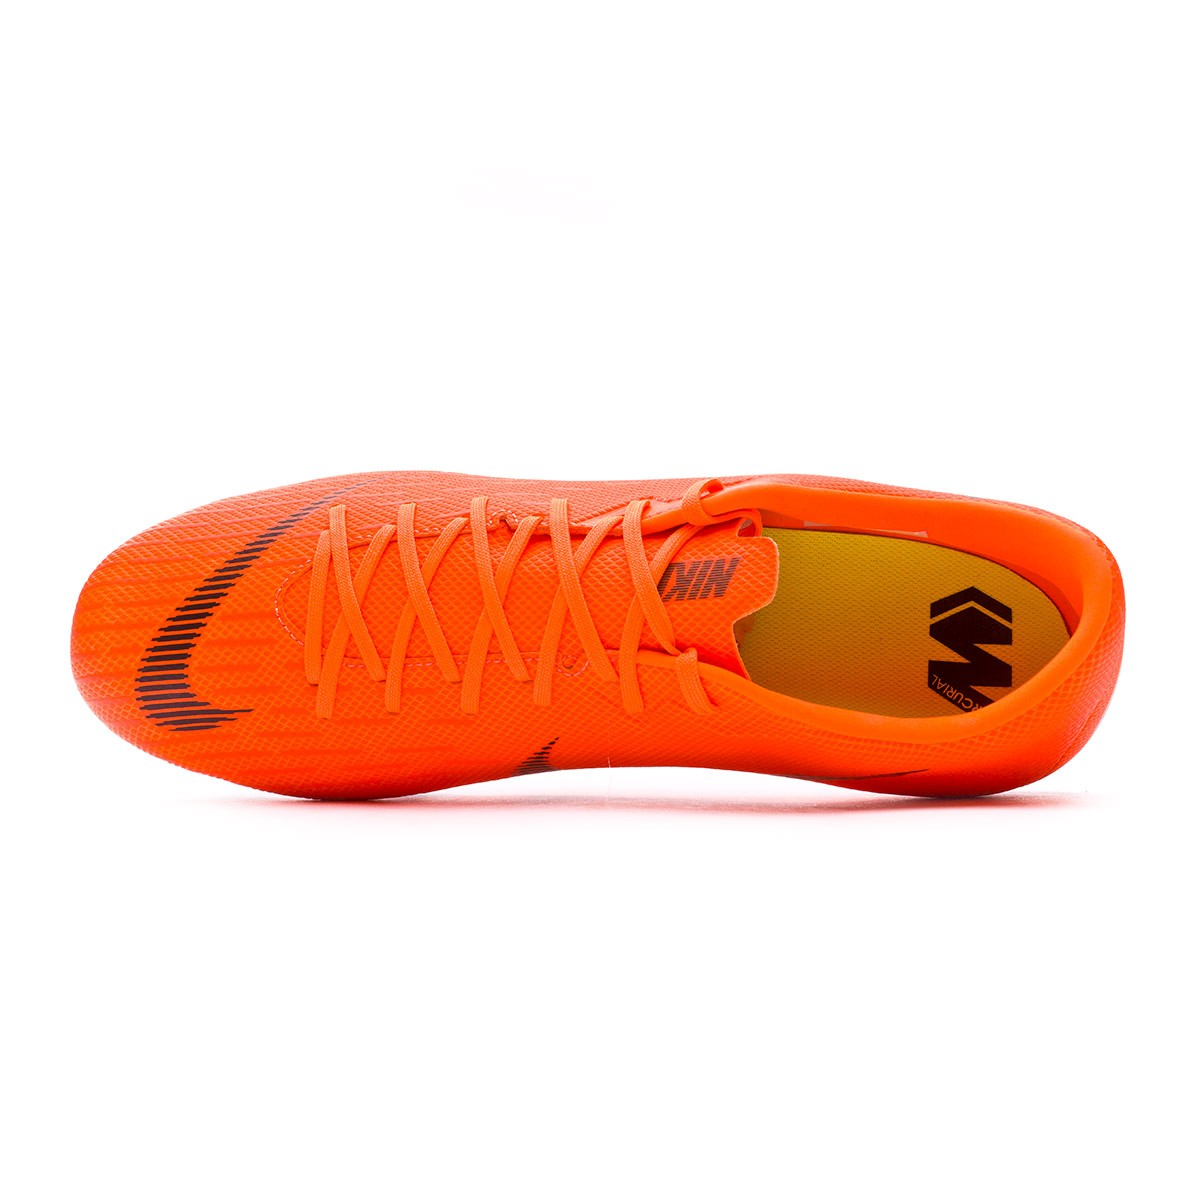 bb25ca4b0 Football Boots Nike Mercurial Vapor XII Academy SG-Pro Total orange-Black-Volt  - Football store Fútbol Emotion